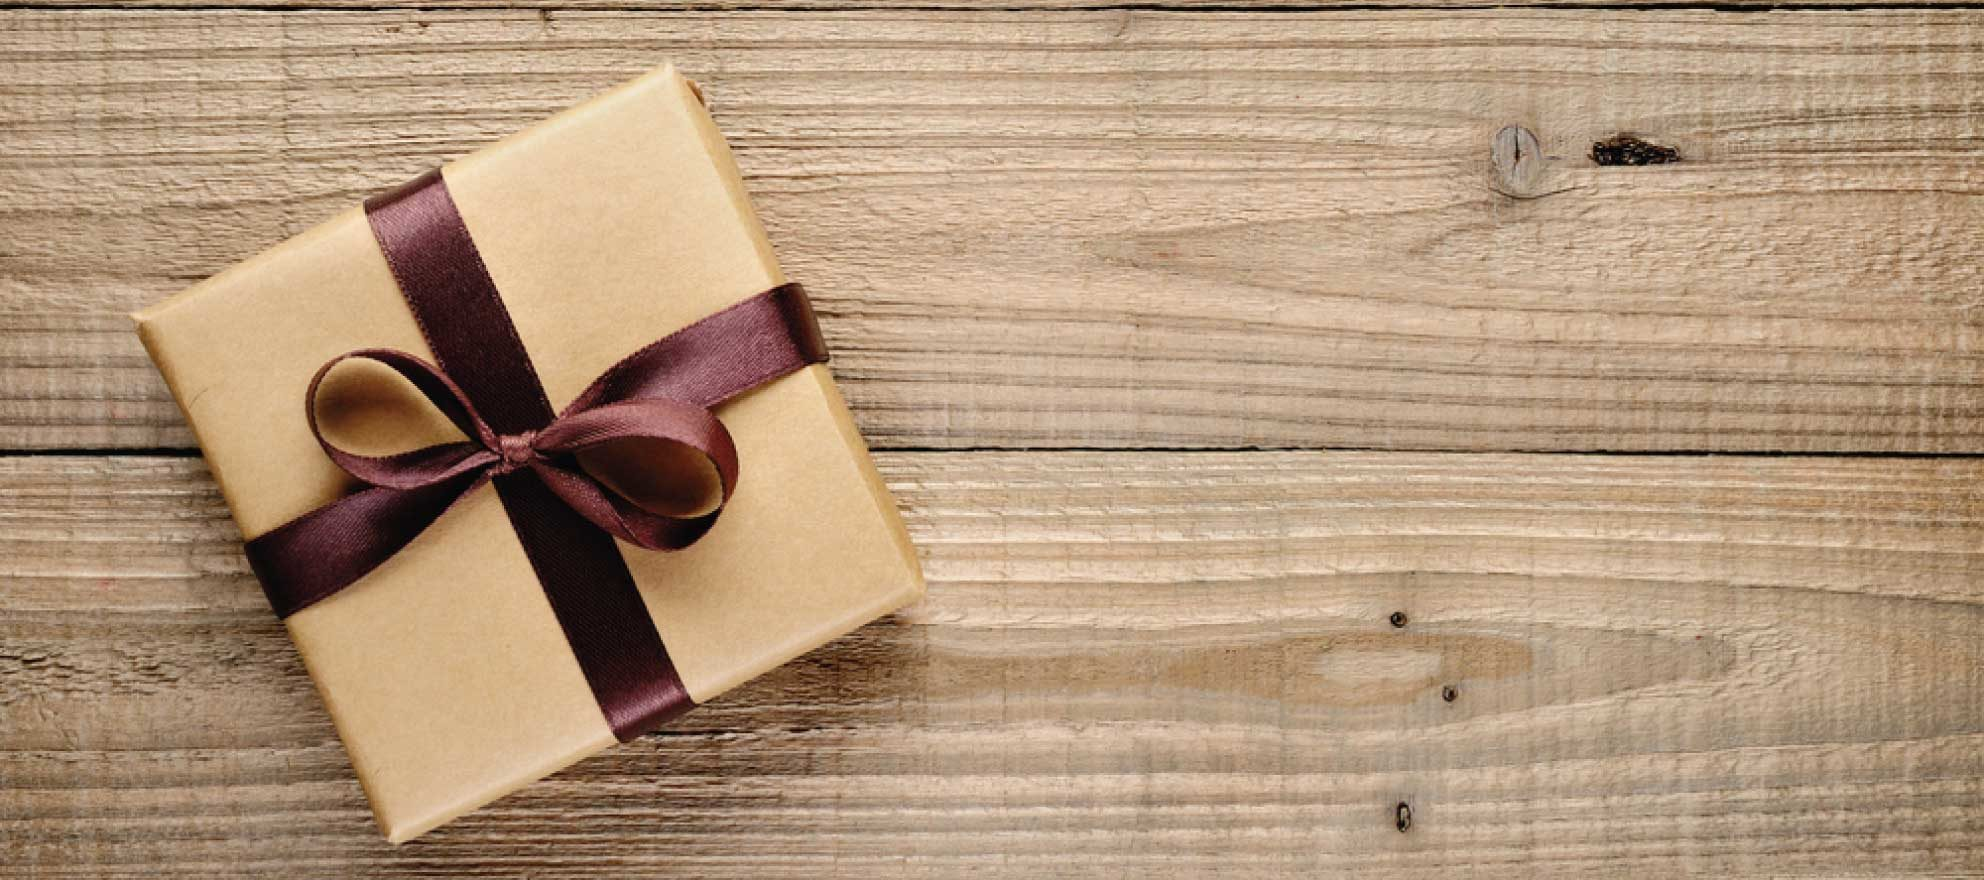 real estate assistant gift ideas